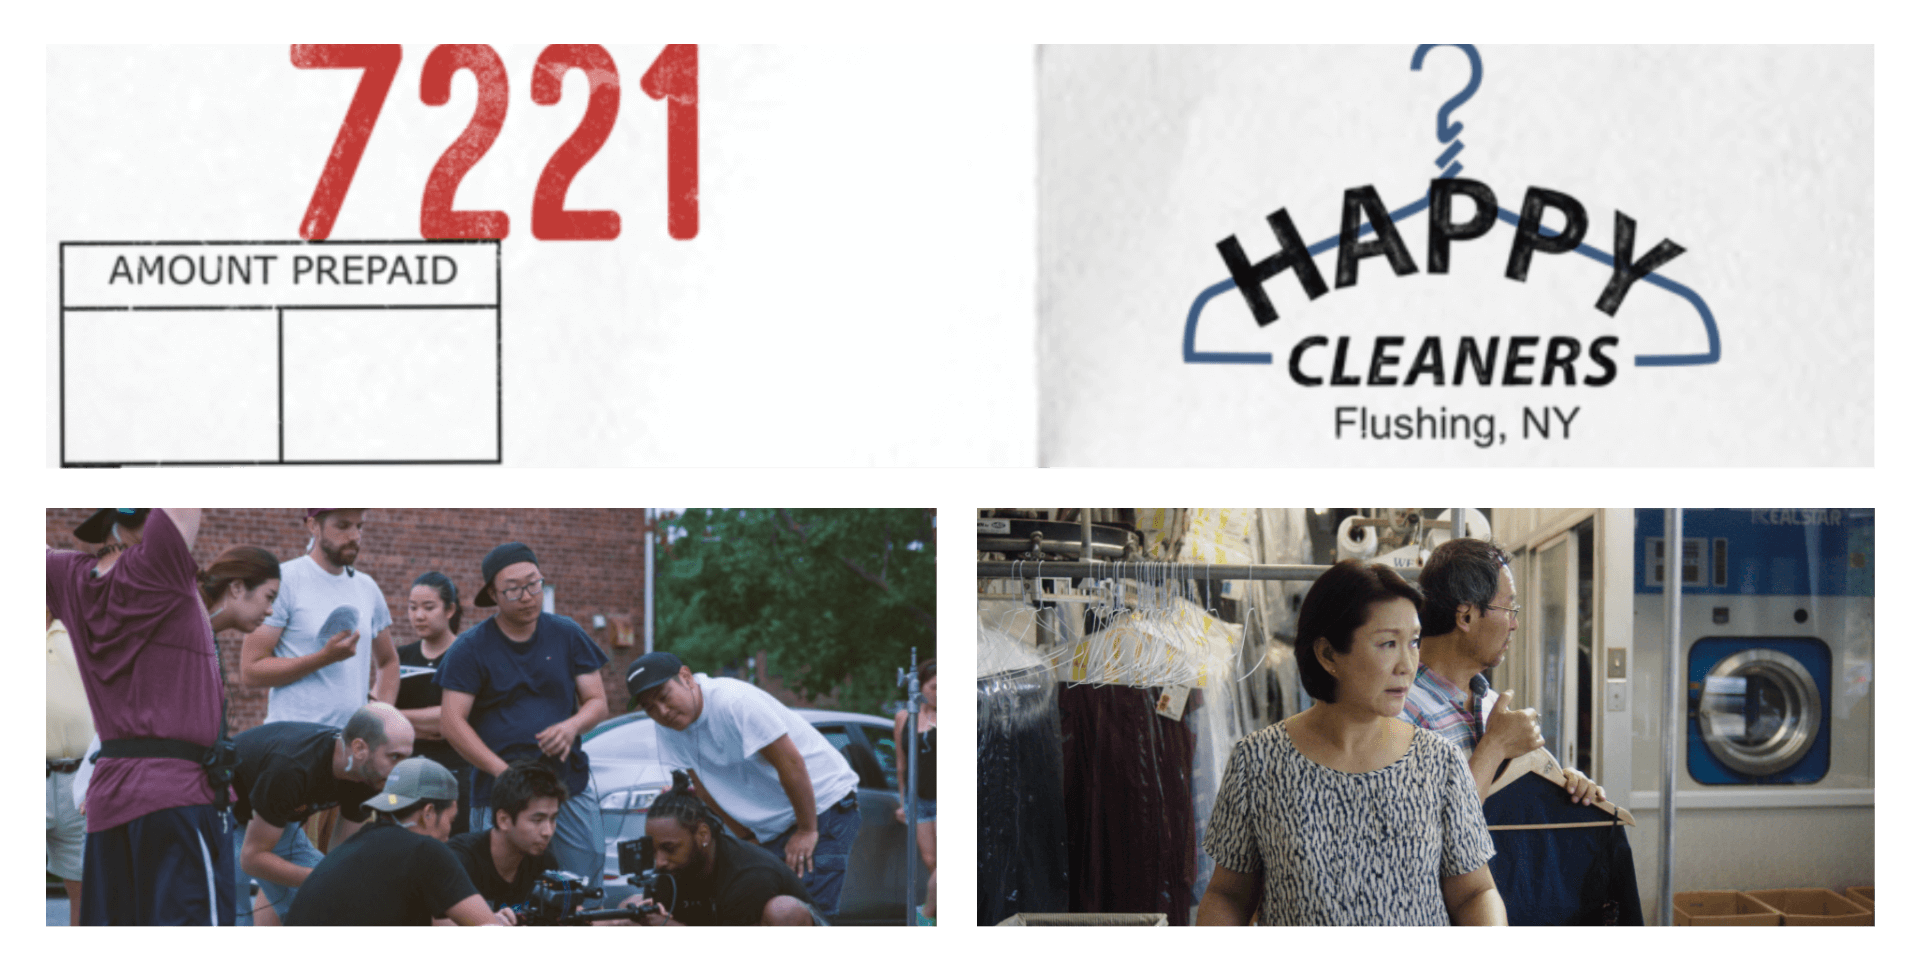 Interview with Happy Cleaners filmmakers Julian Kim and Peter S Lee